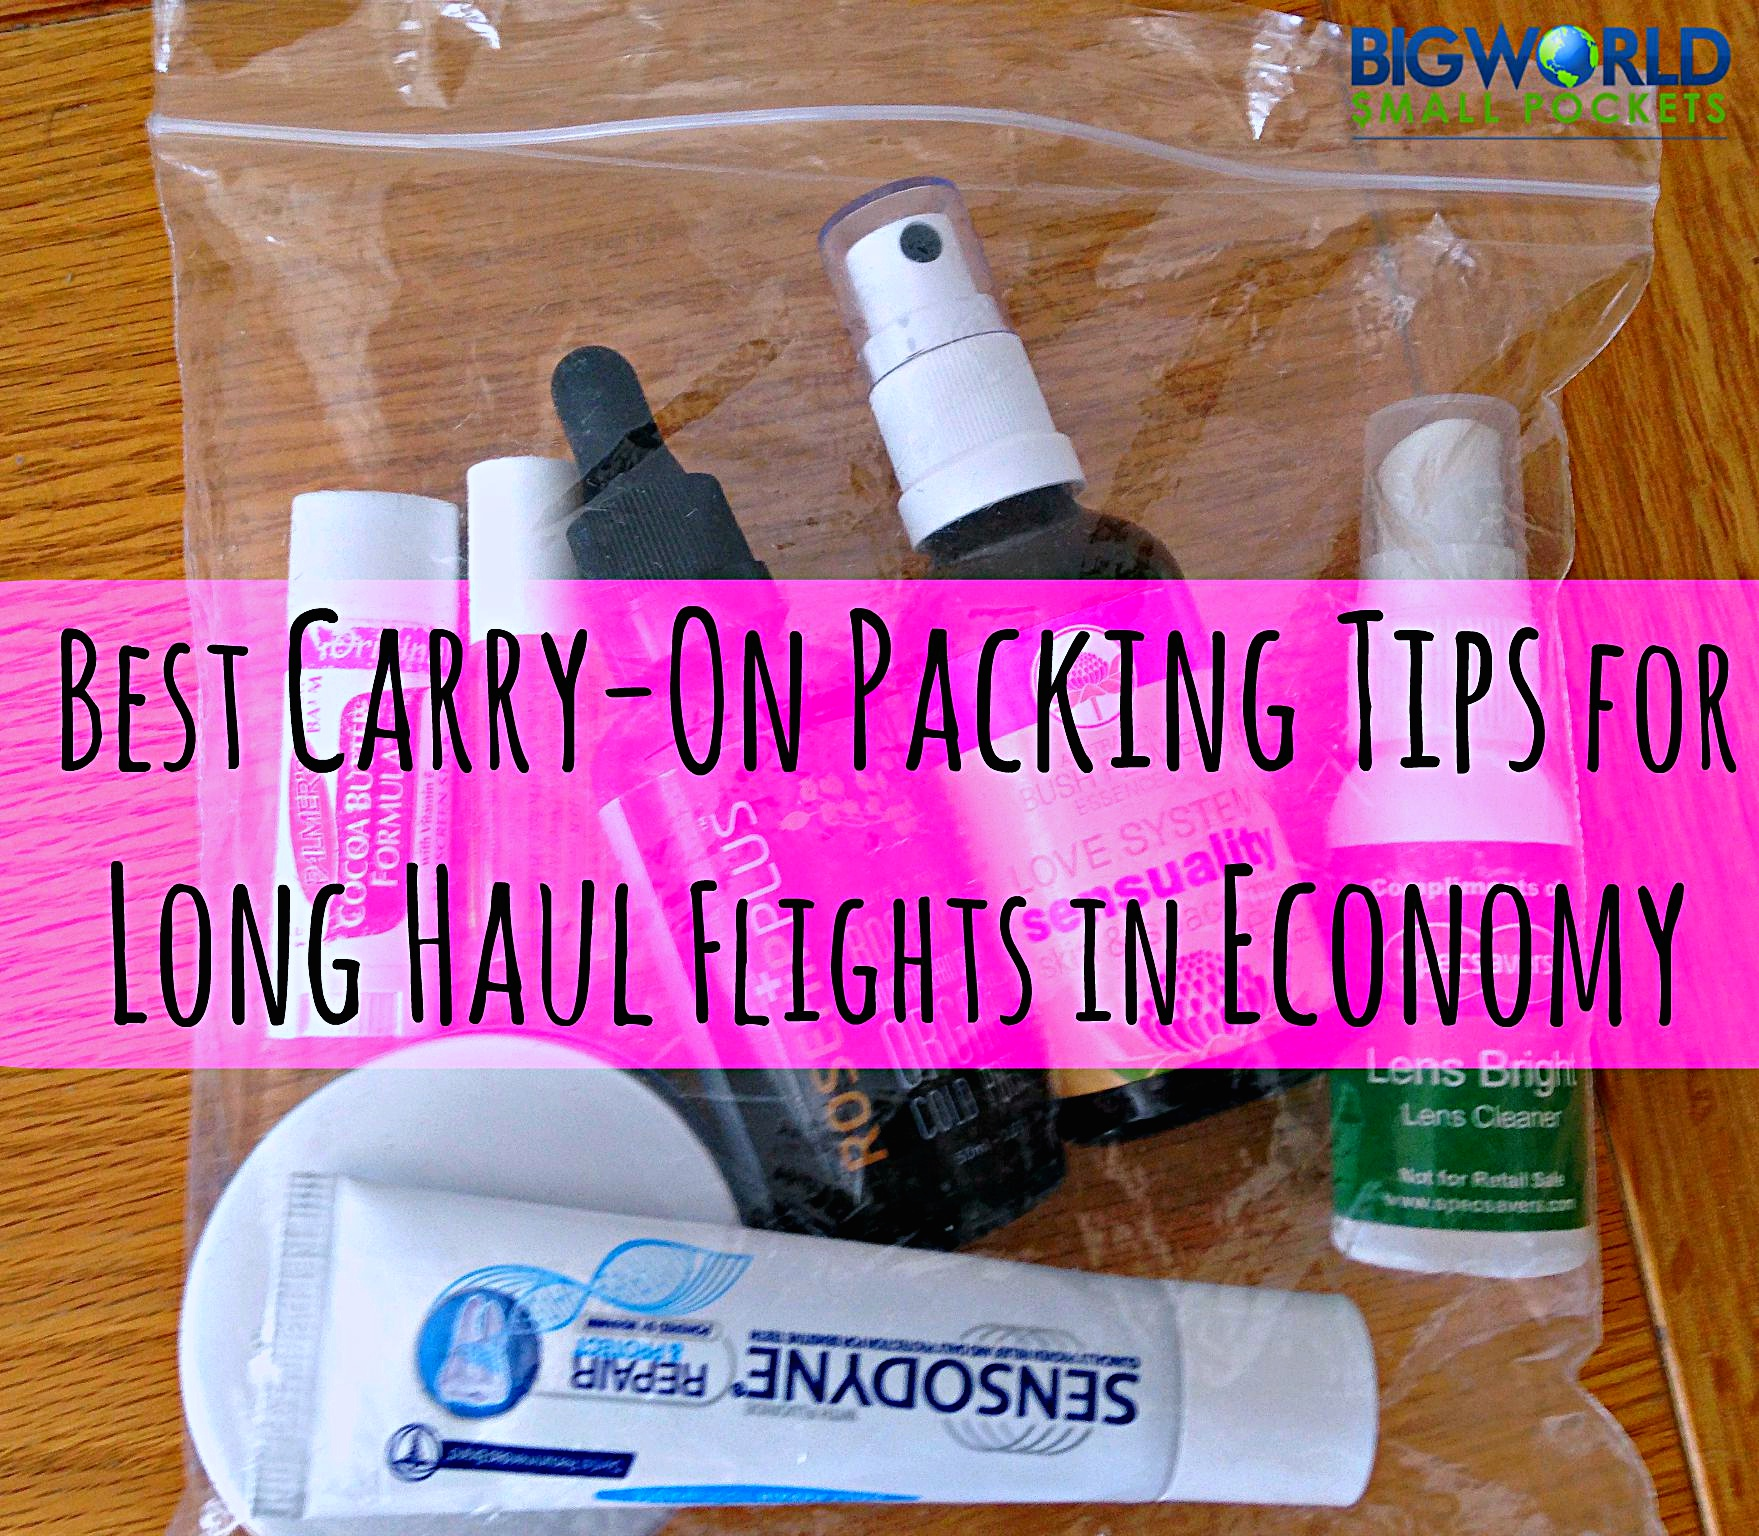 Best Carry-On Packing Tips